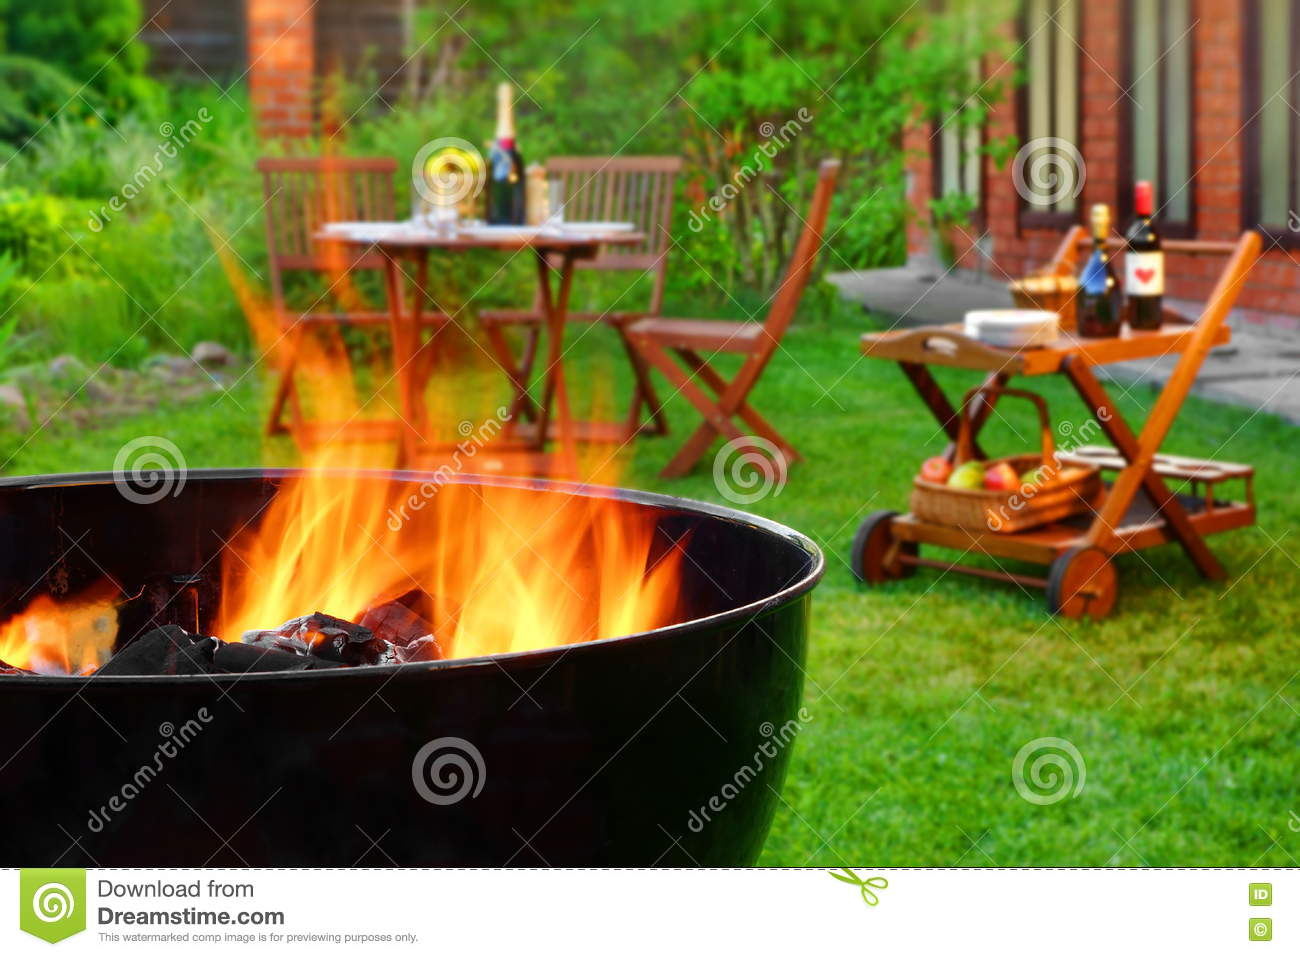 Summer Weekend BBQ Scene With Grill On The Backyard Garden